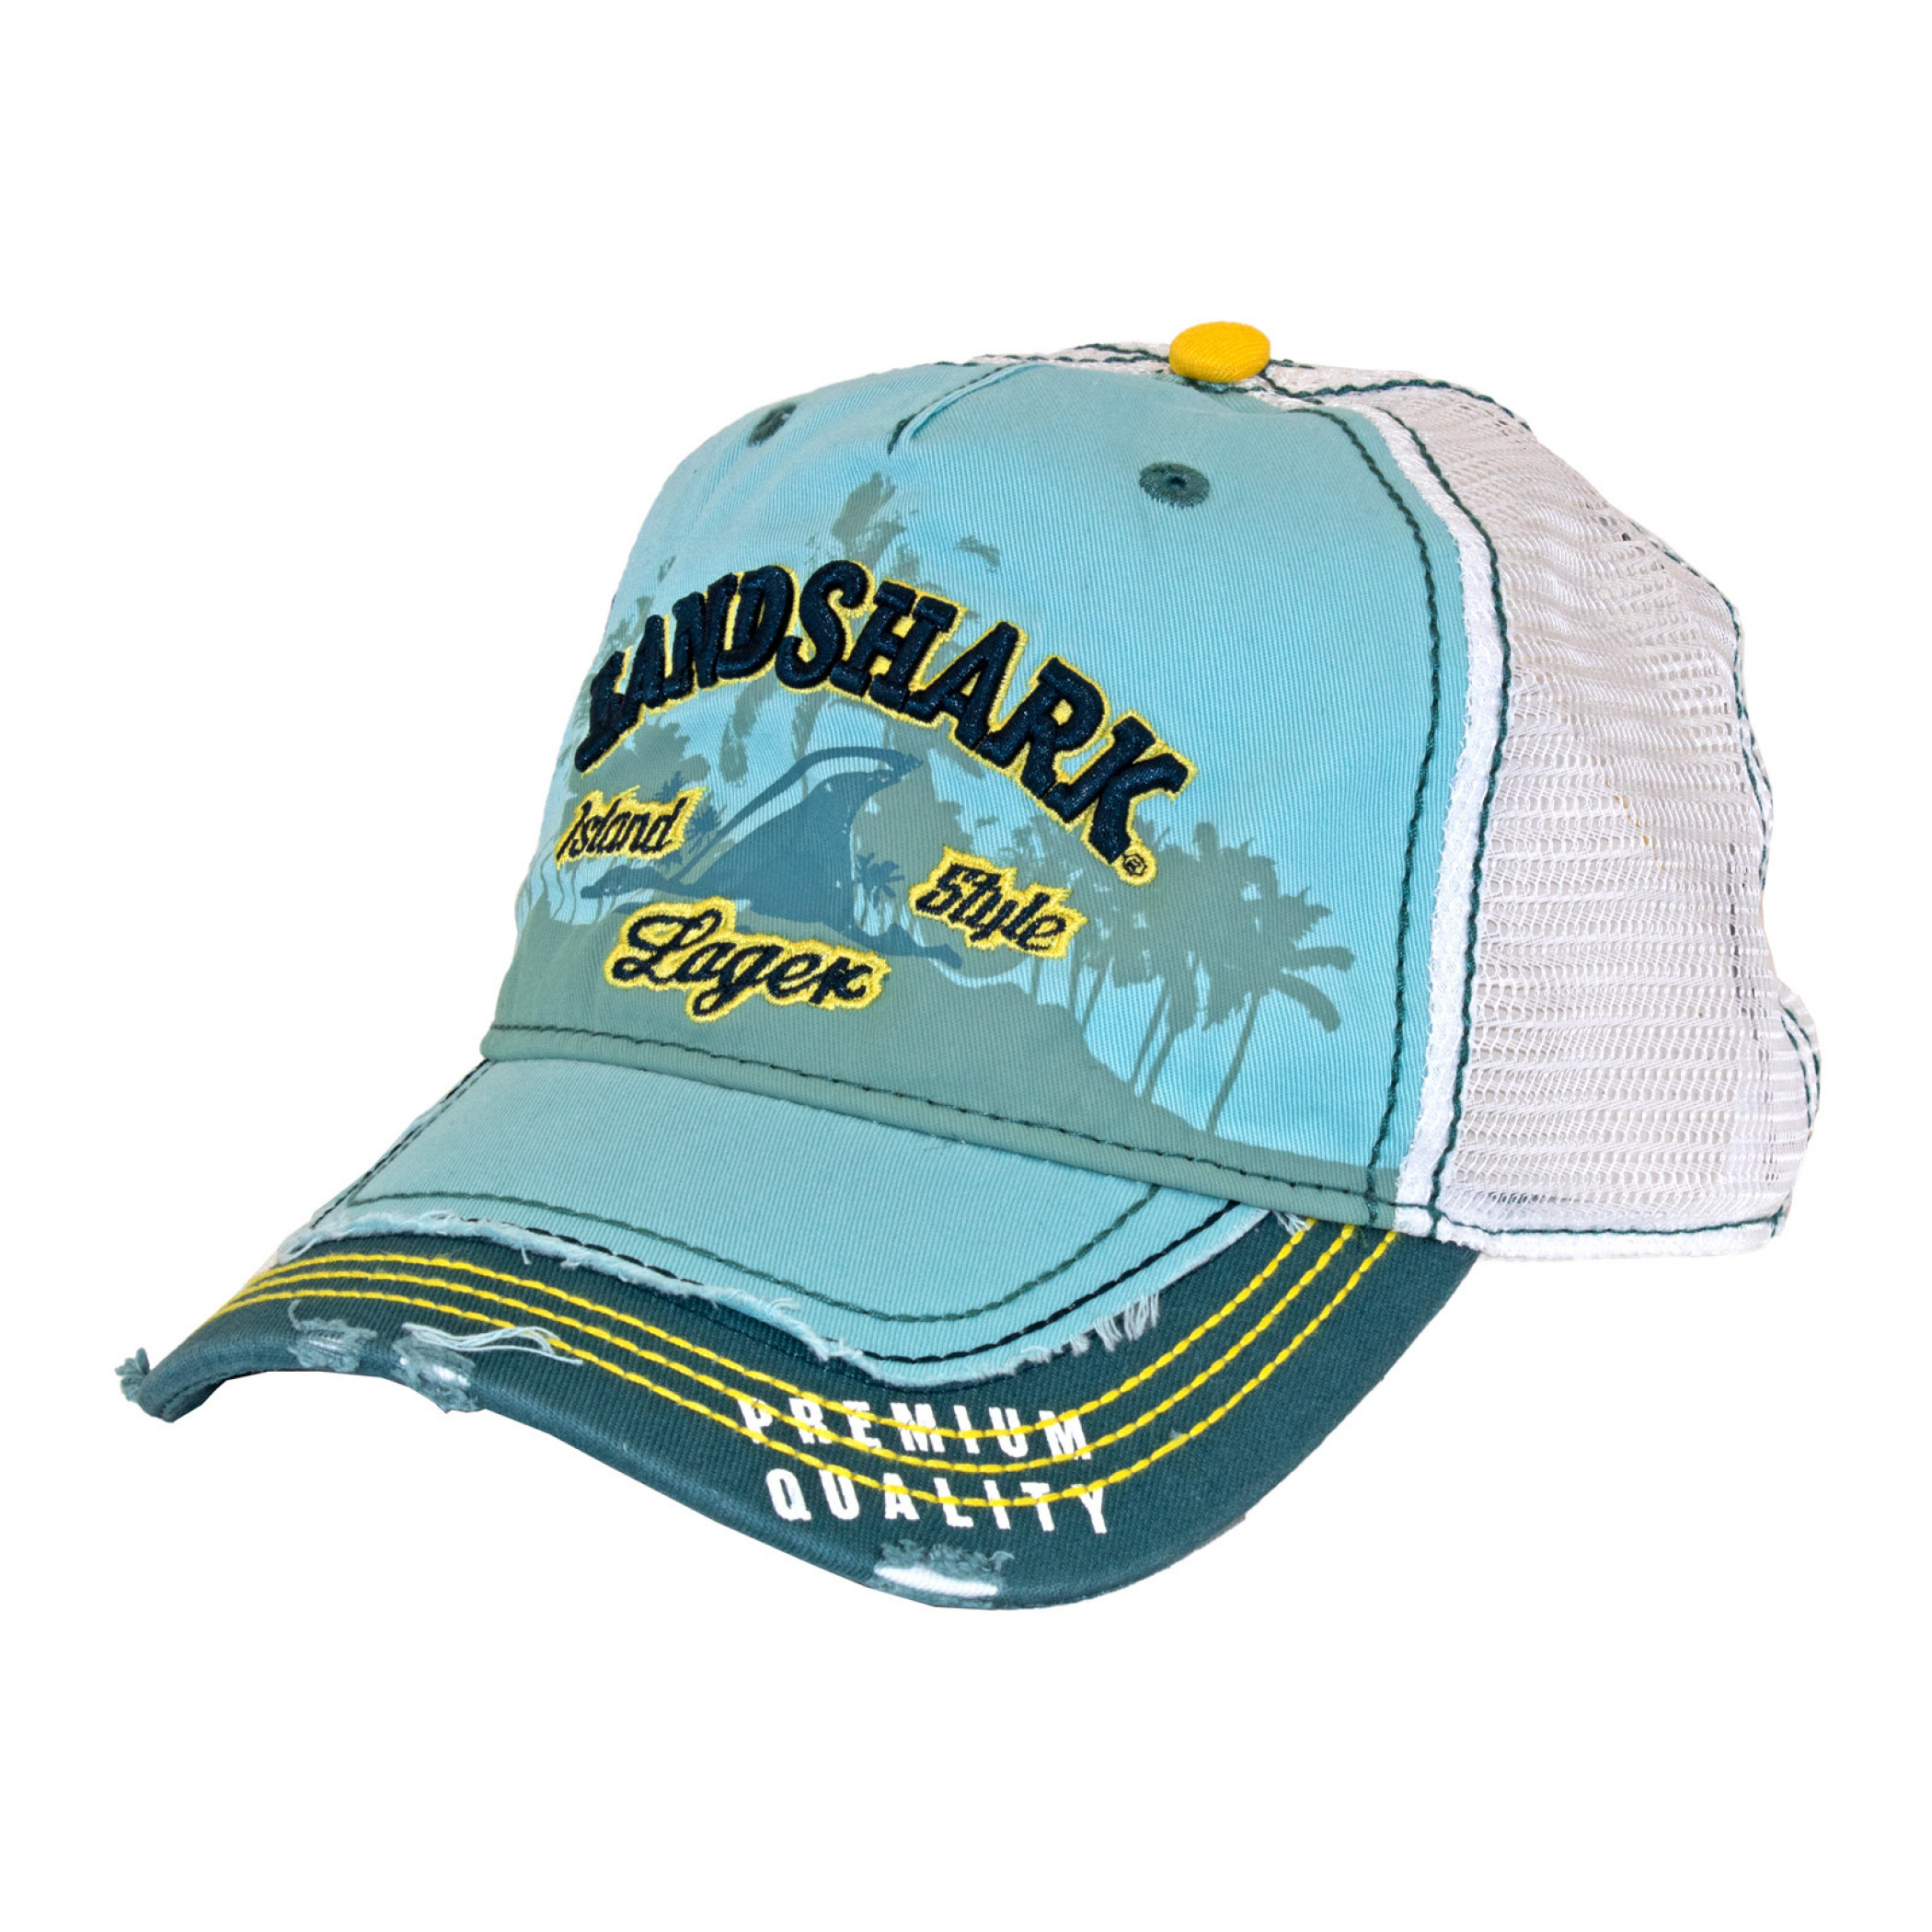 Landshark Heavy Stone Wash Mesh Trucker Hat